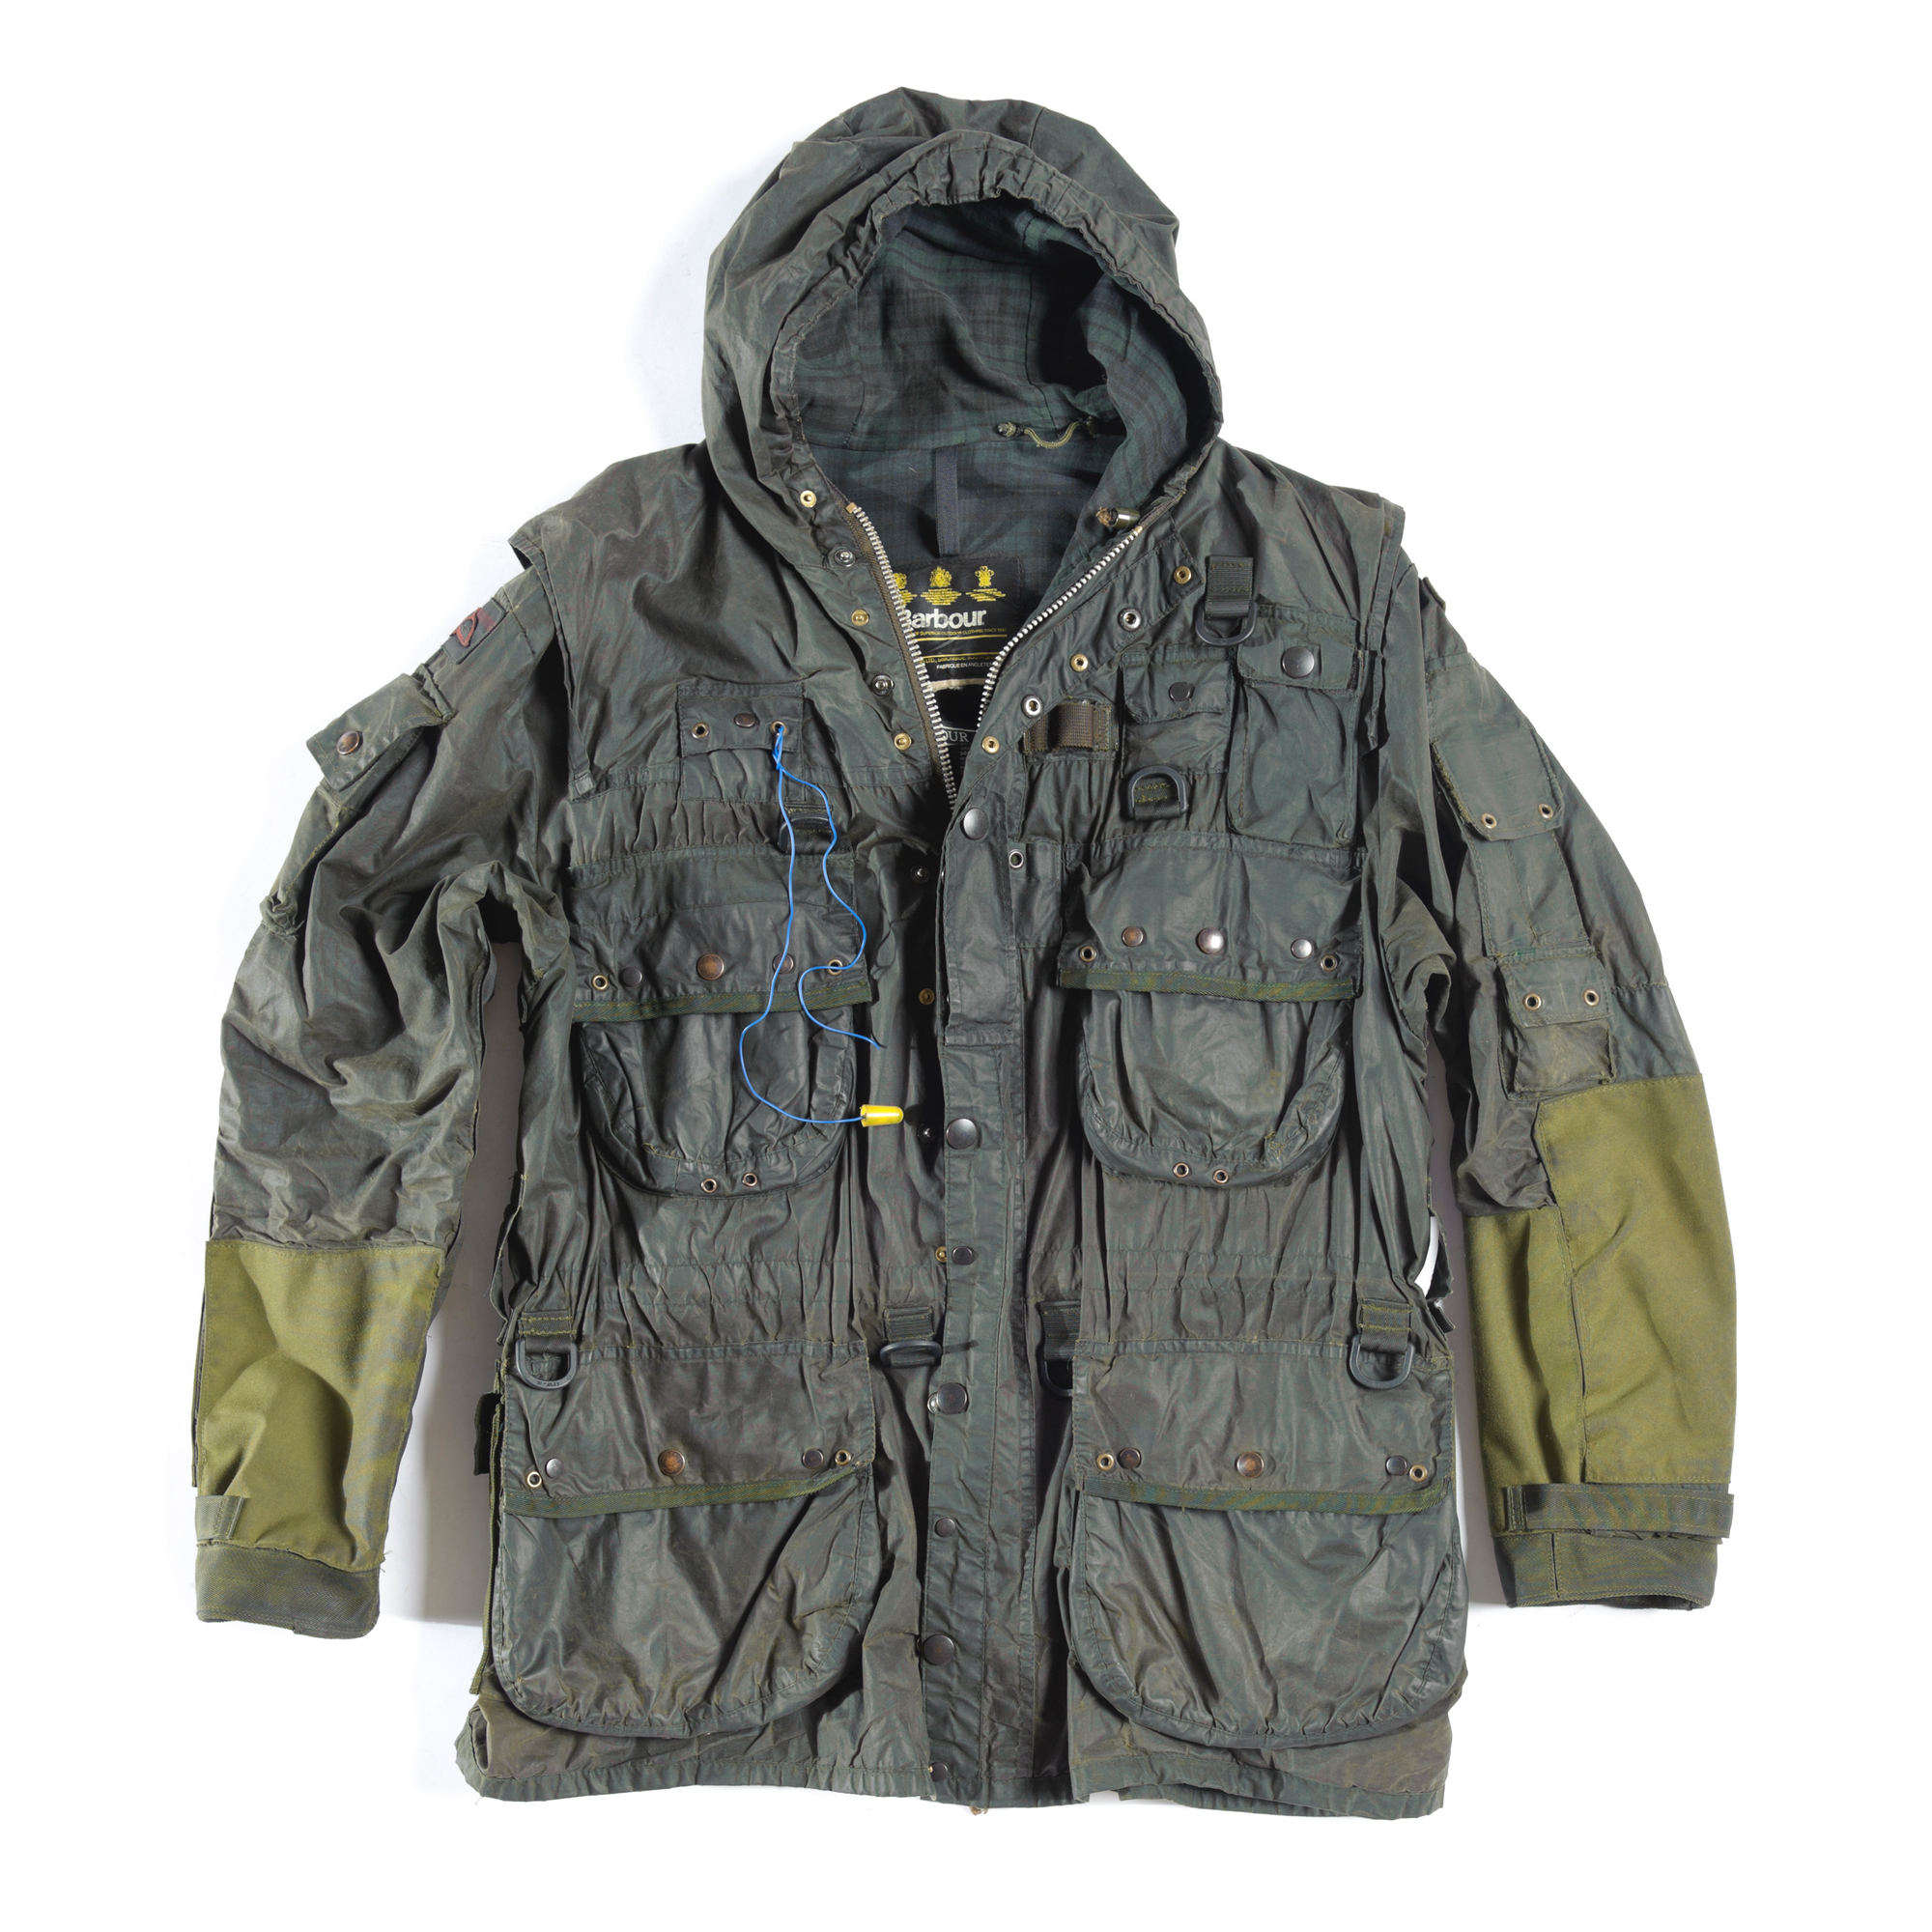 veste durham barbour personnalisee capitaine Mick Cotton